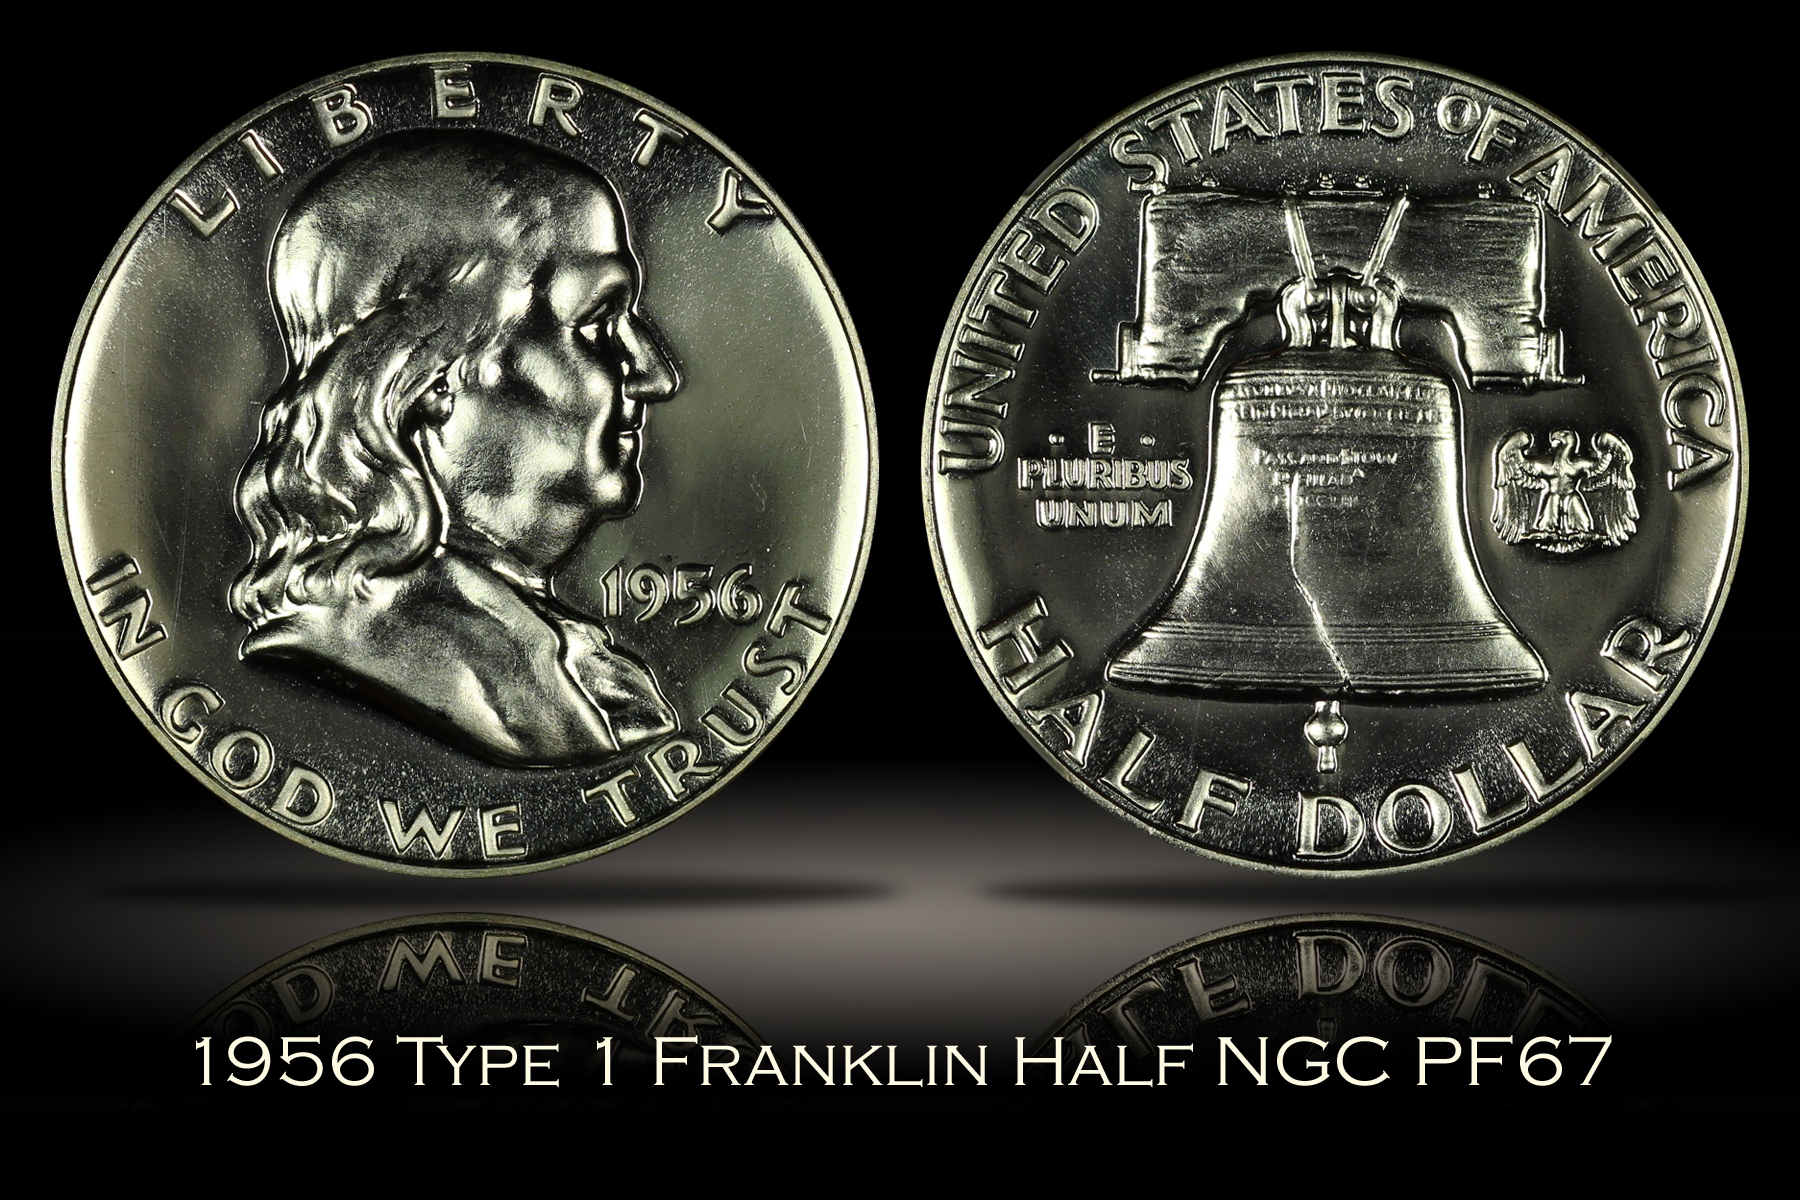 1956 Type 1 Proof Franklin Half NGC PF67